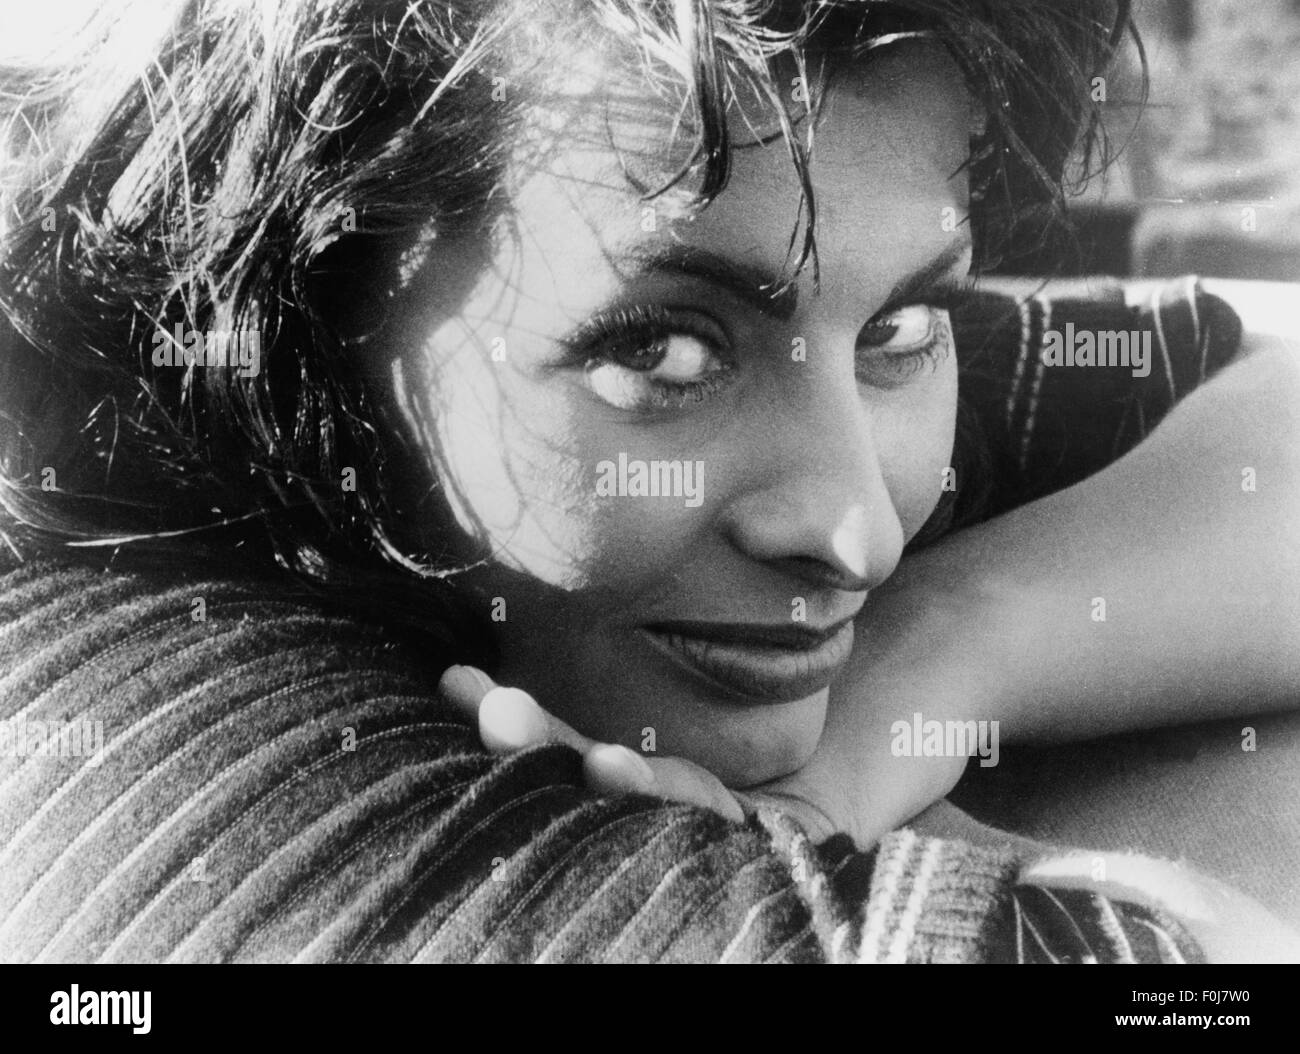 Sofia Loren 1934 High Resolution Stock Photography and Images - Alamy